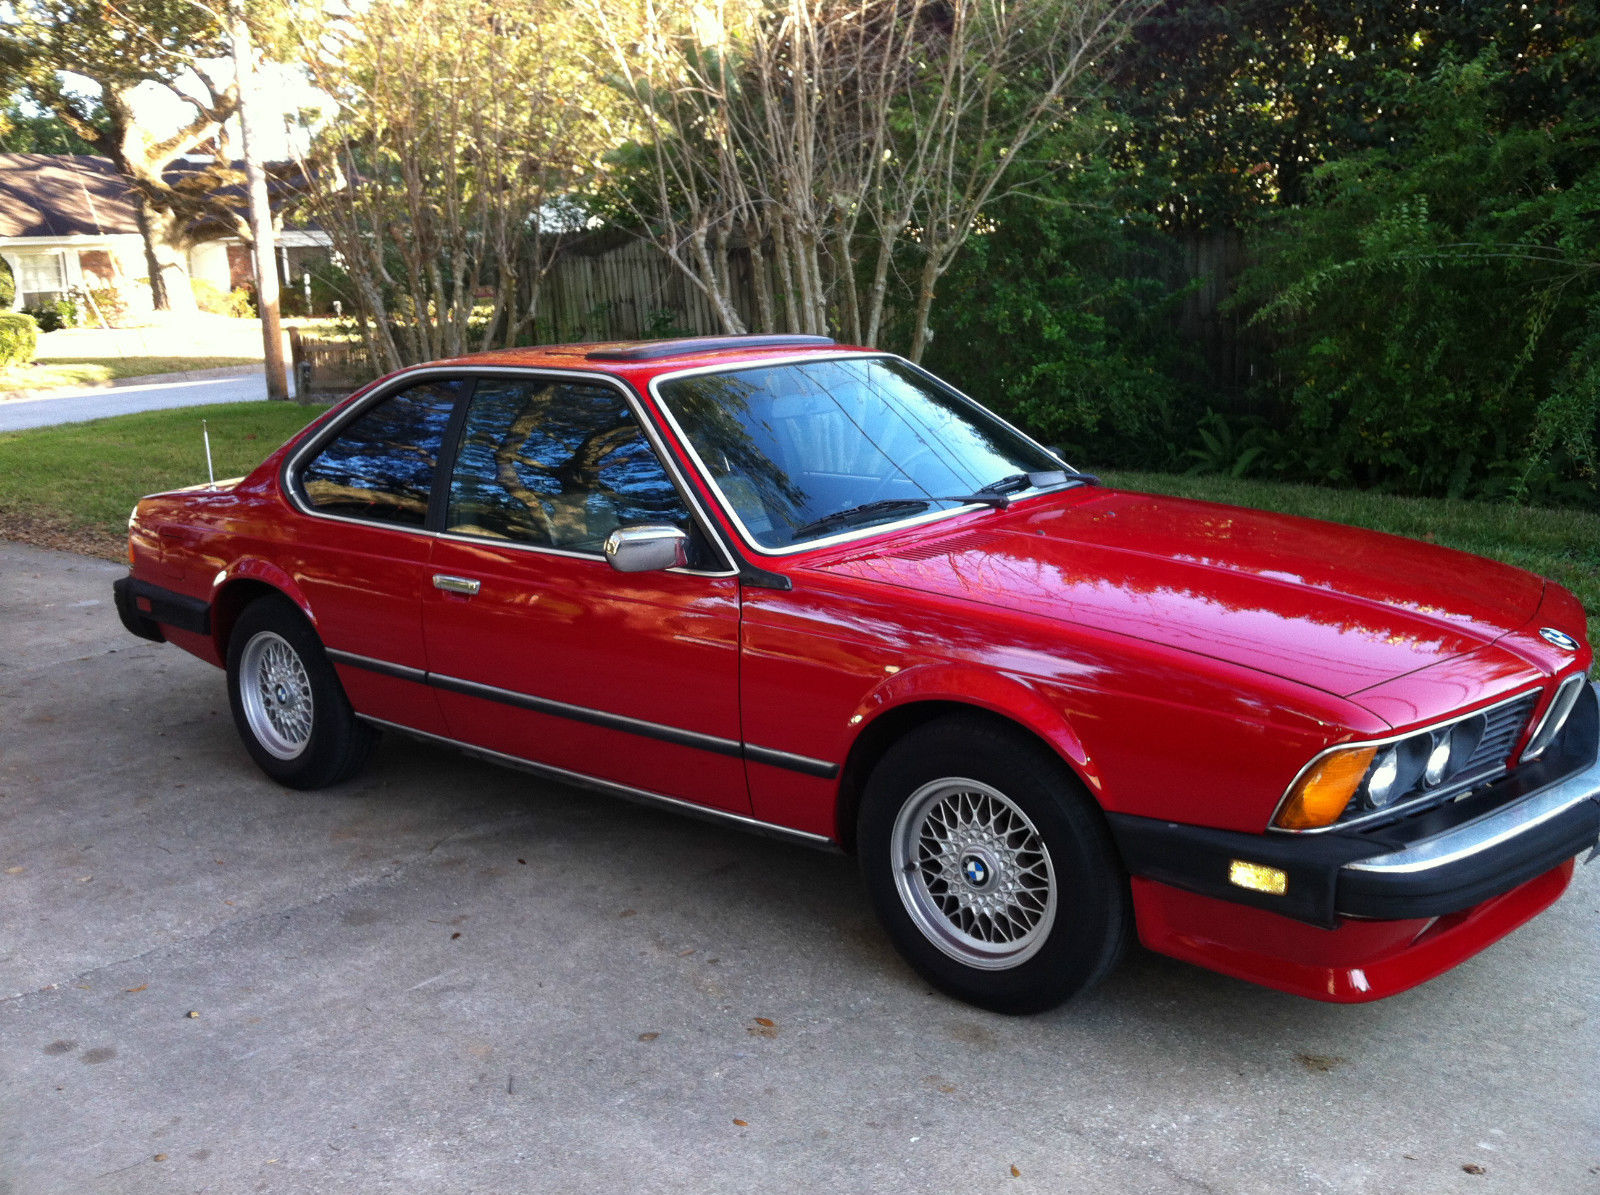 Bmw Of Orlando >> Daily Turismo: Bracq Friday: 1986 BMW 635CSi